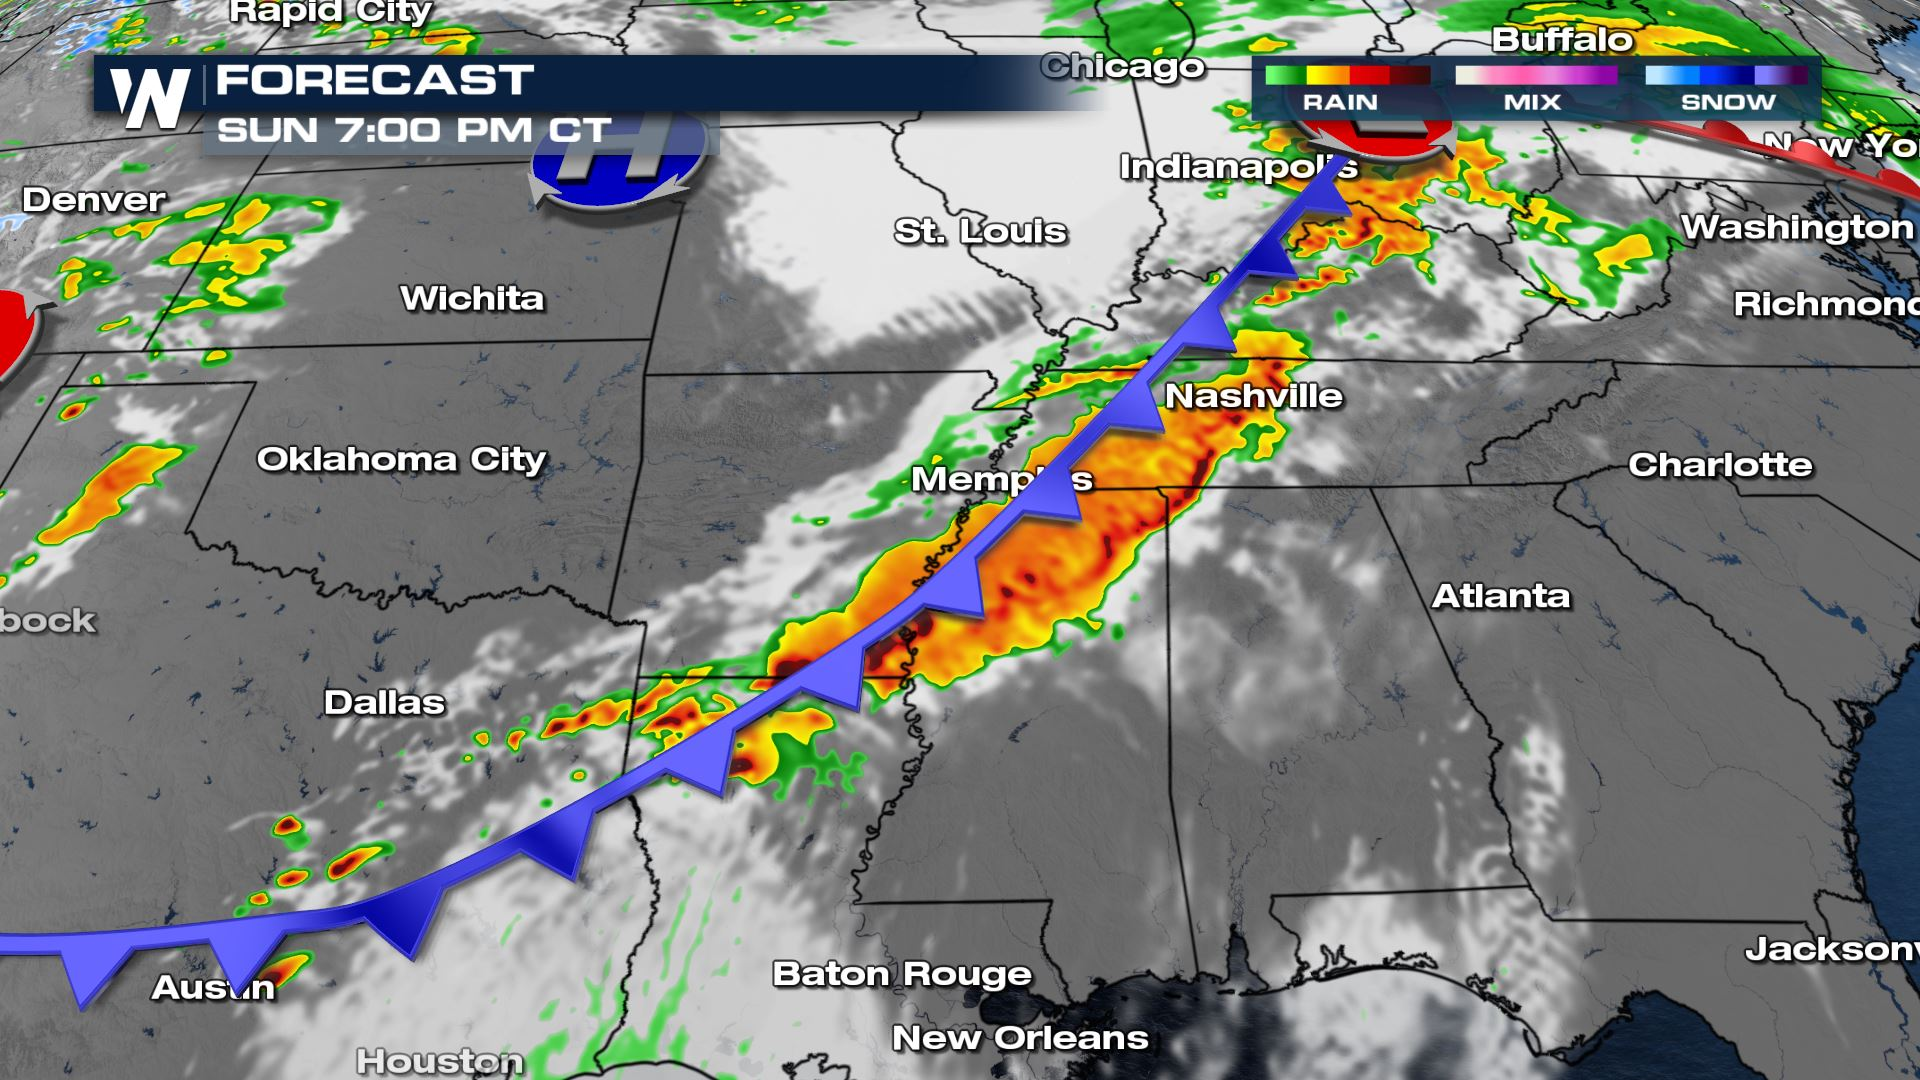 Severe Weather Centers on the Mid-South Sunday